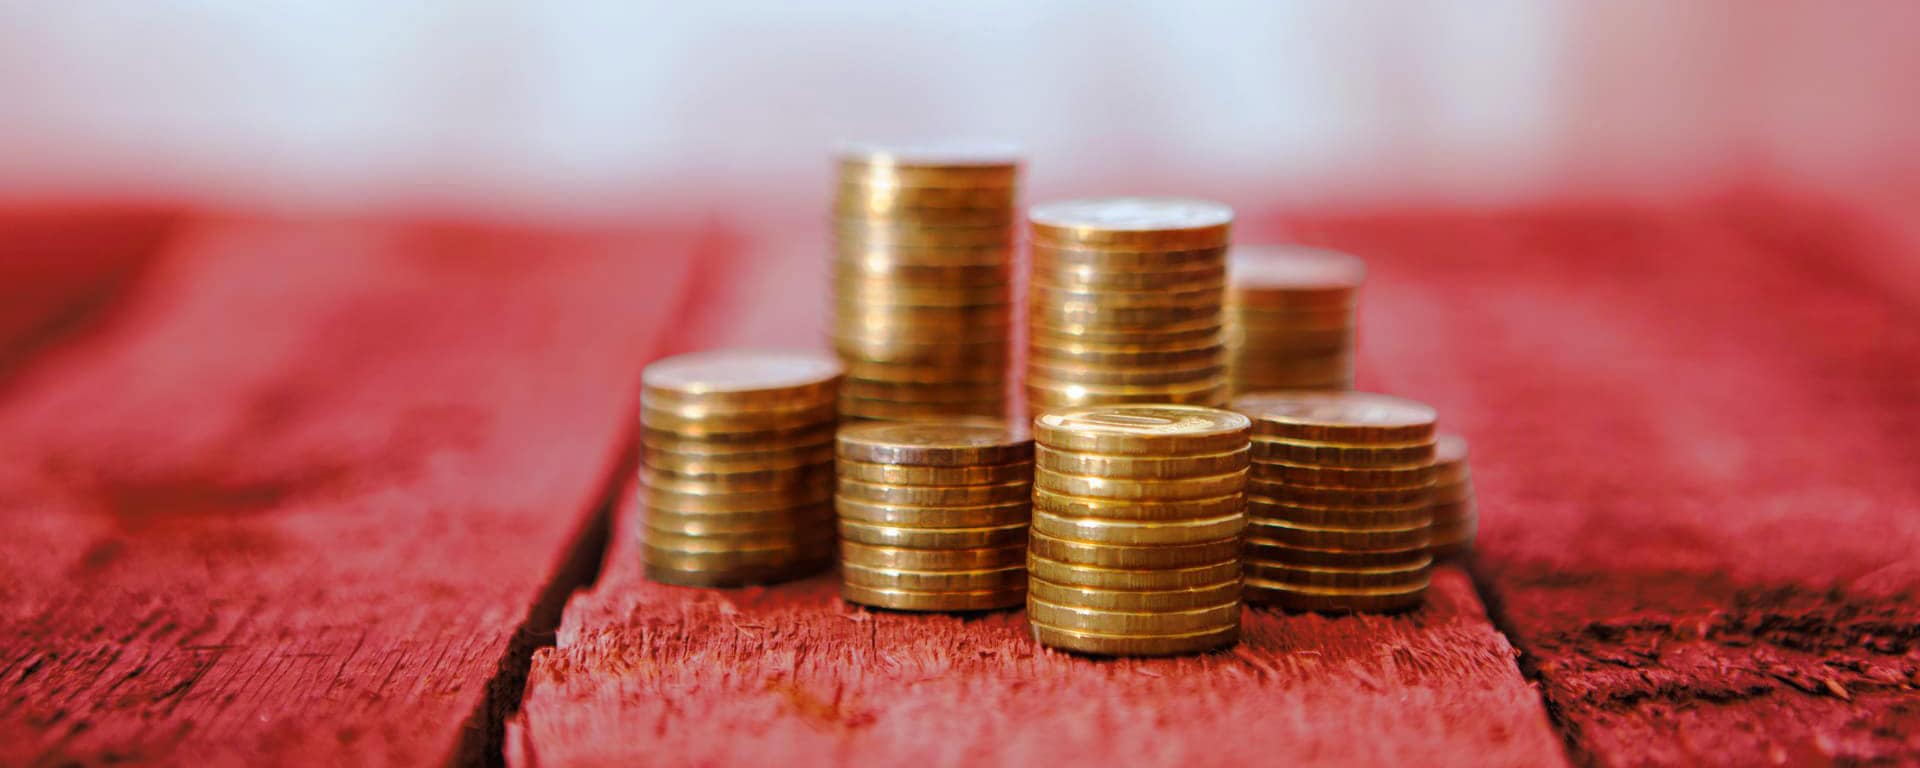 business decision management blog image - pile of coins